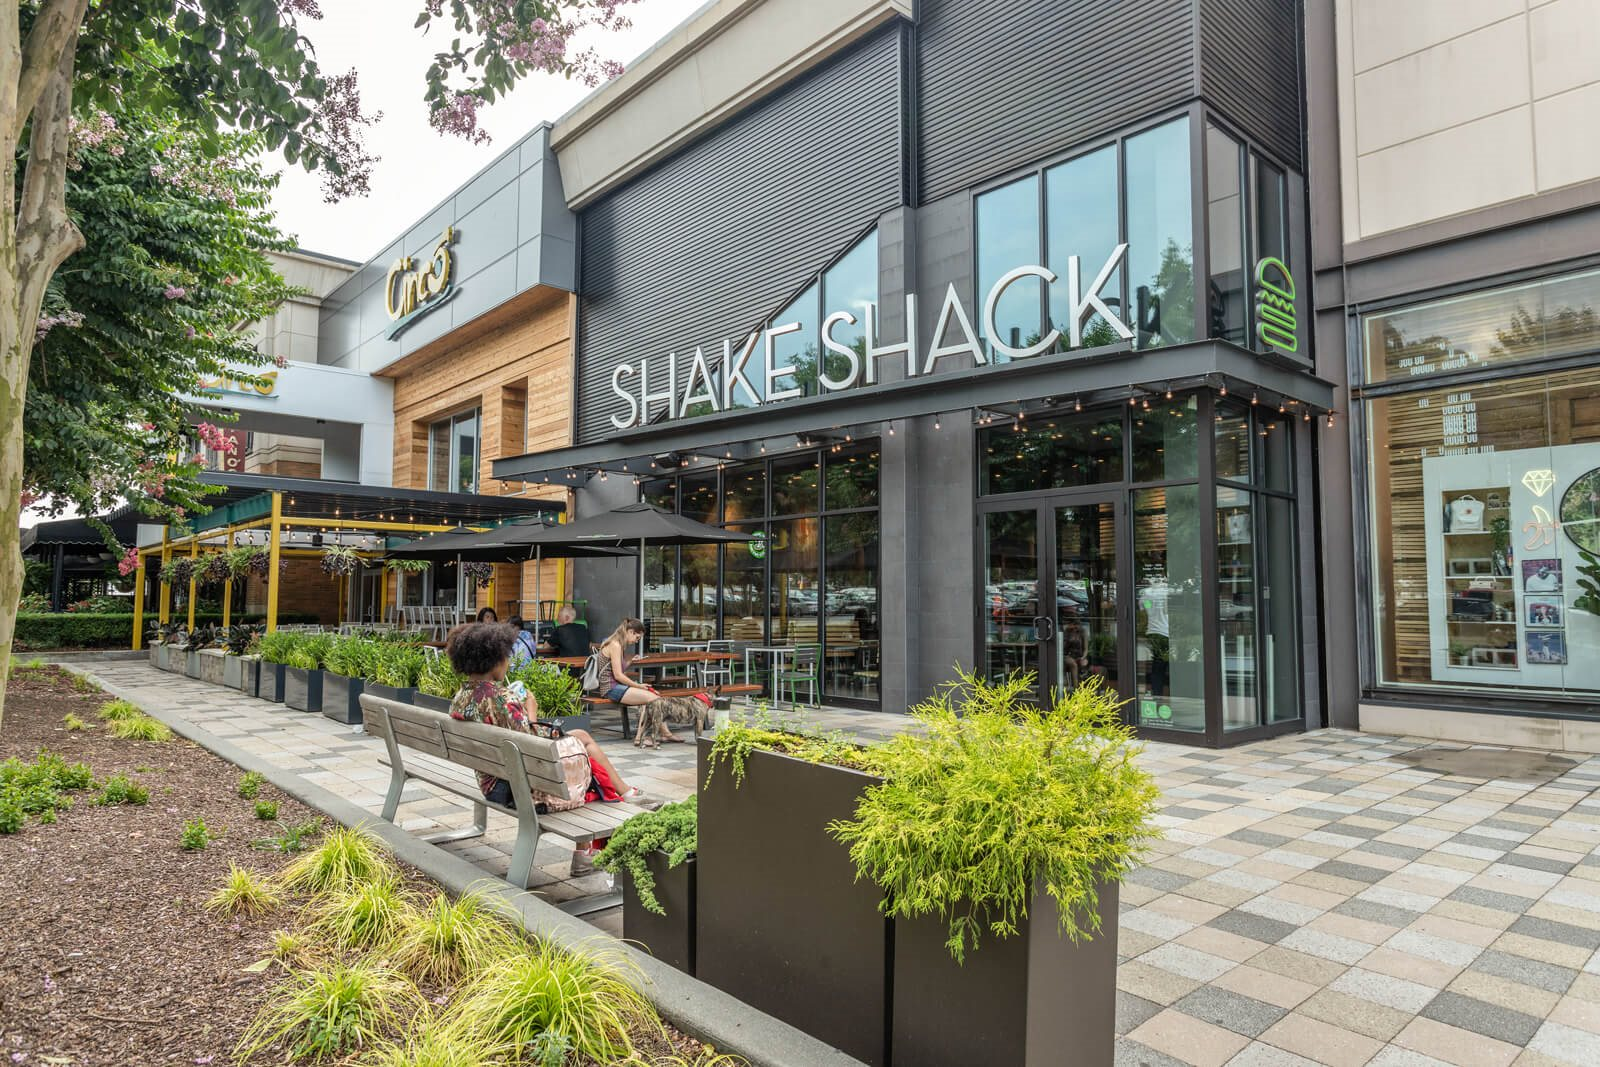 Shake Shack near Windsor at Glenridge, Georgia, 30342